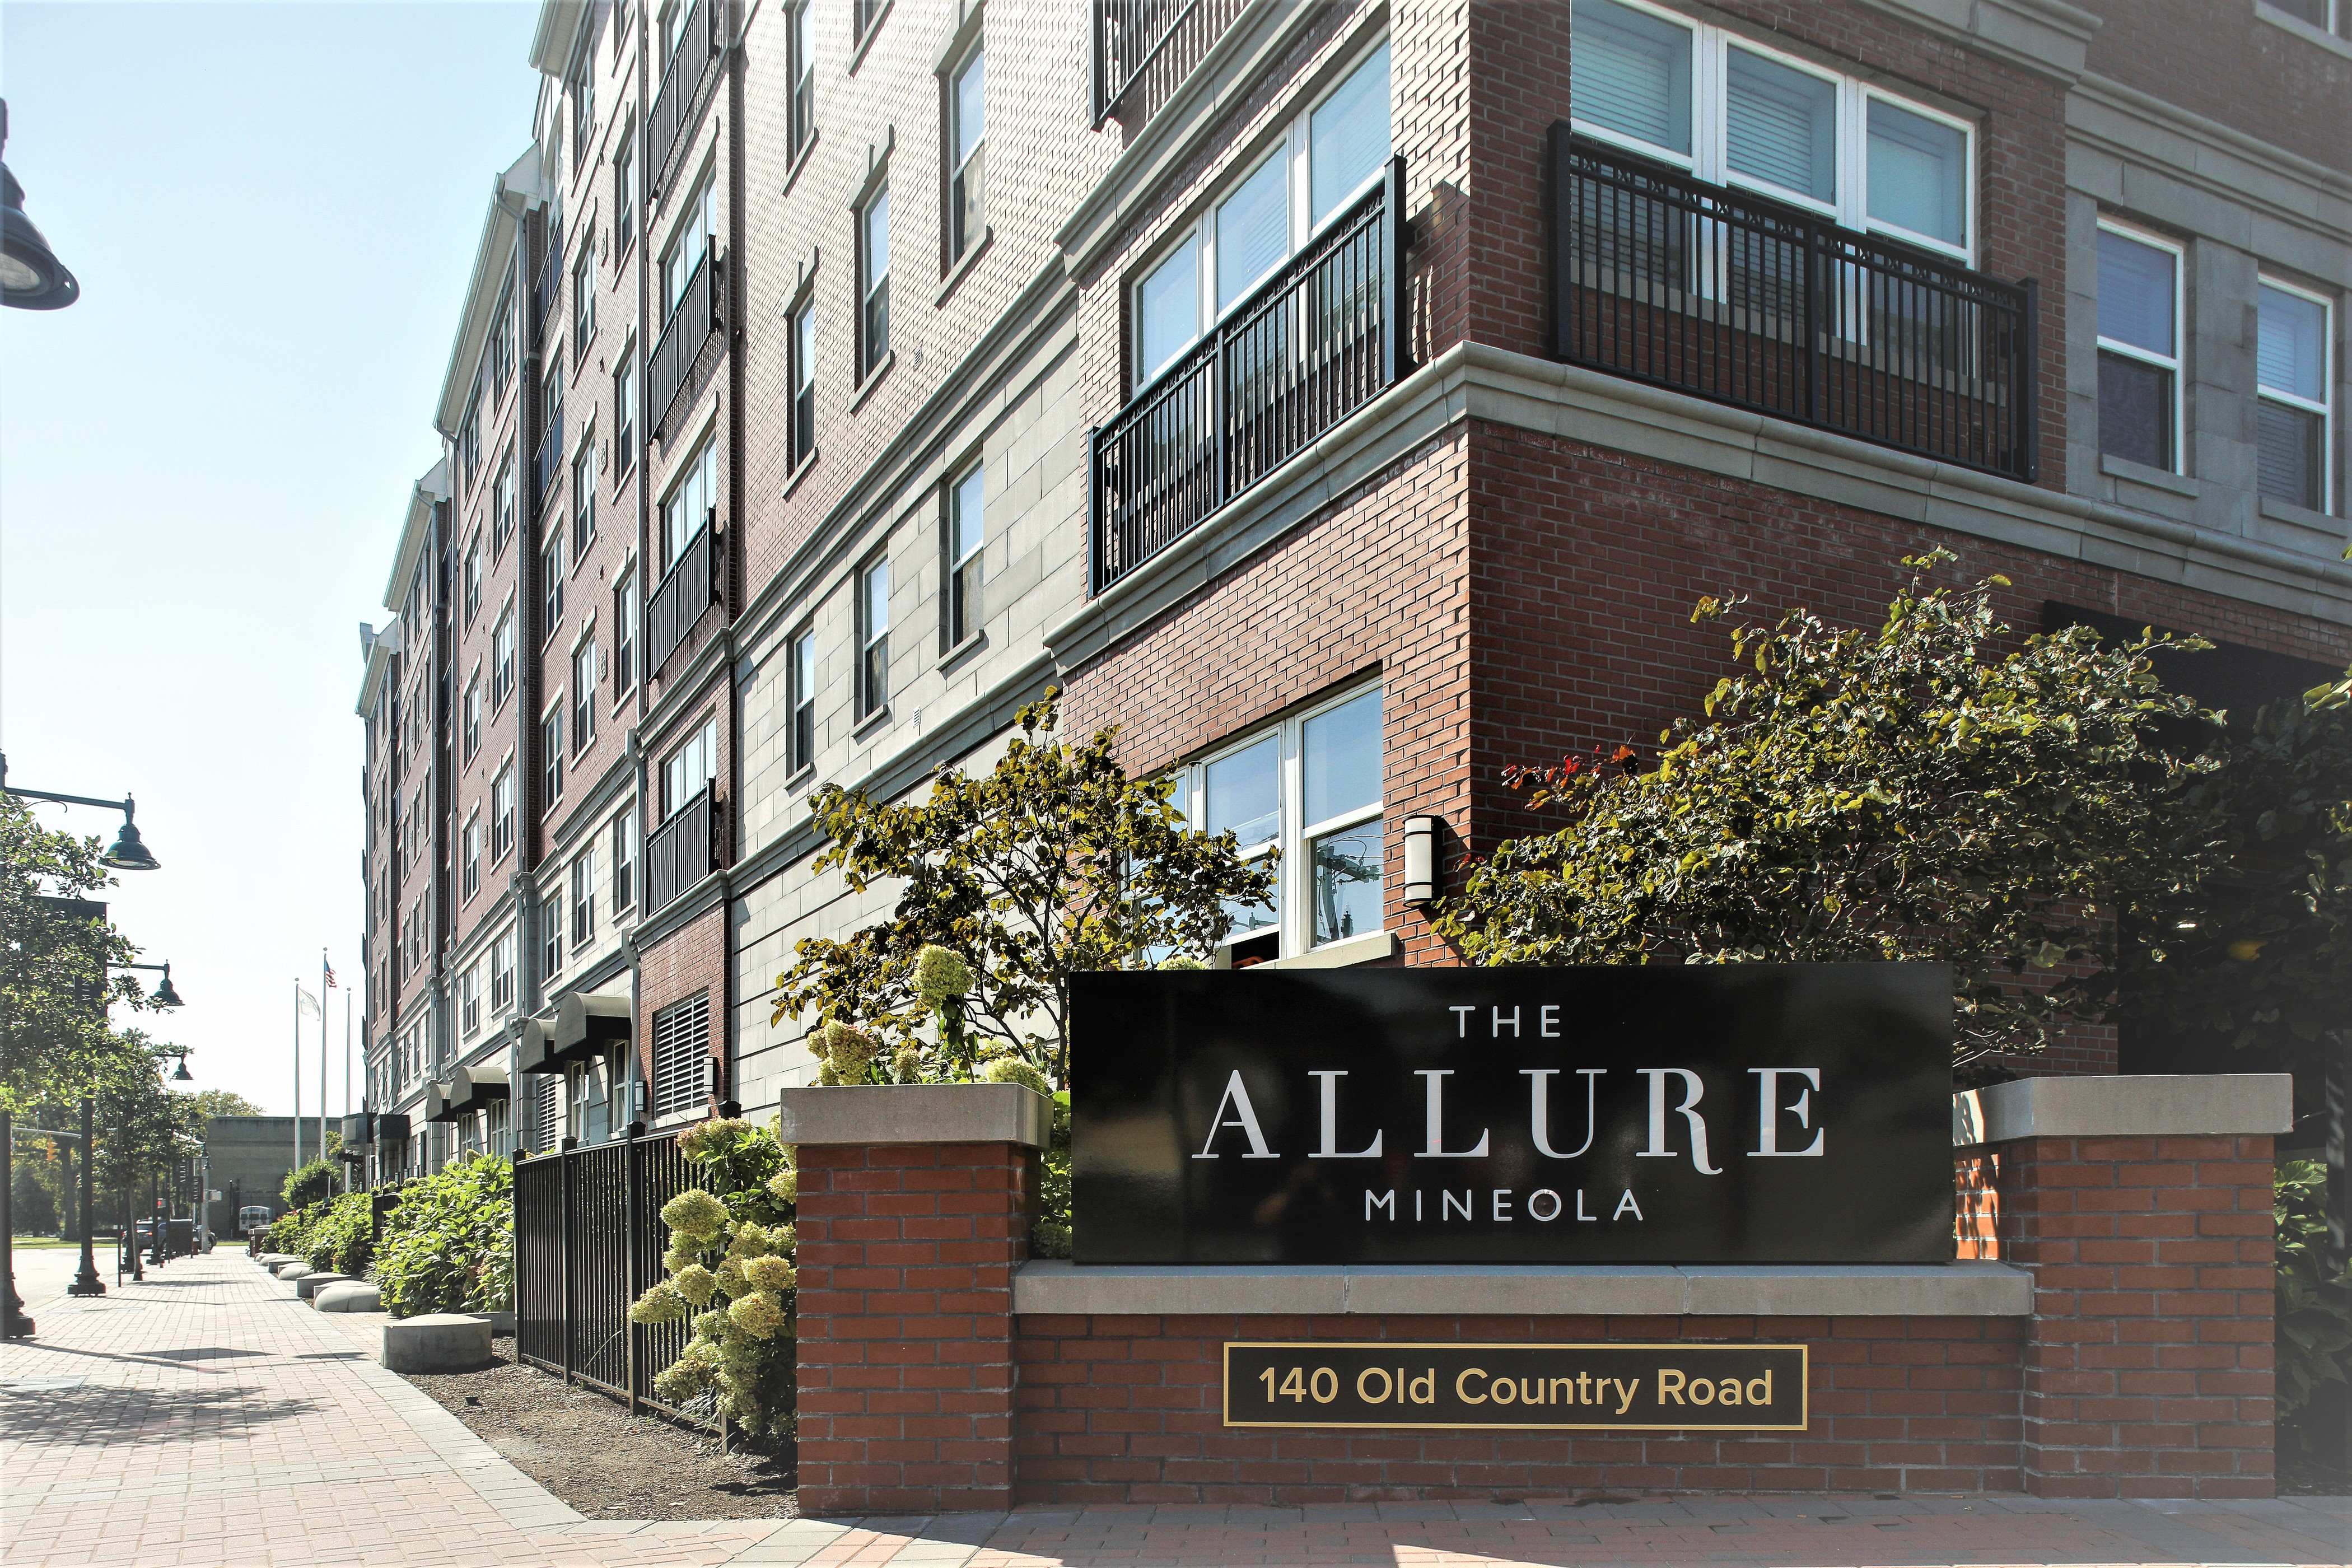 The Allure Building At 140 Old Country Rd Is One Of Buildings Bought By Friedkin Realty Group Photo Credit Shea Communications